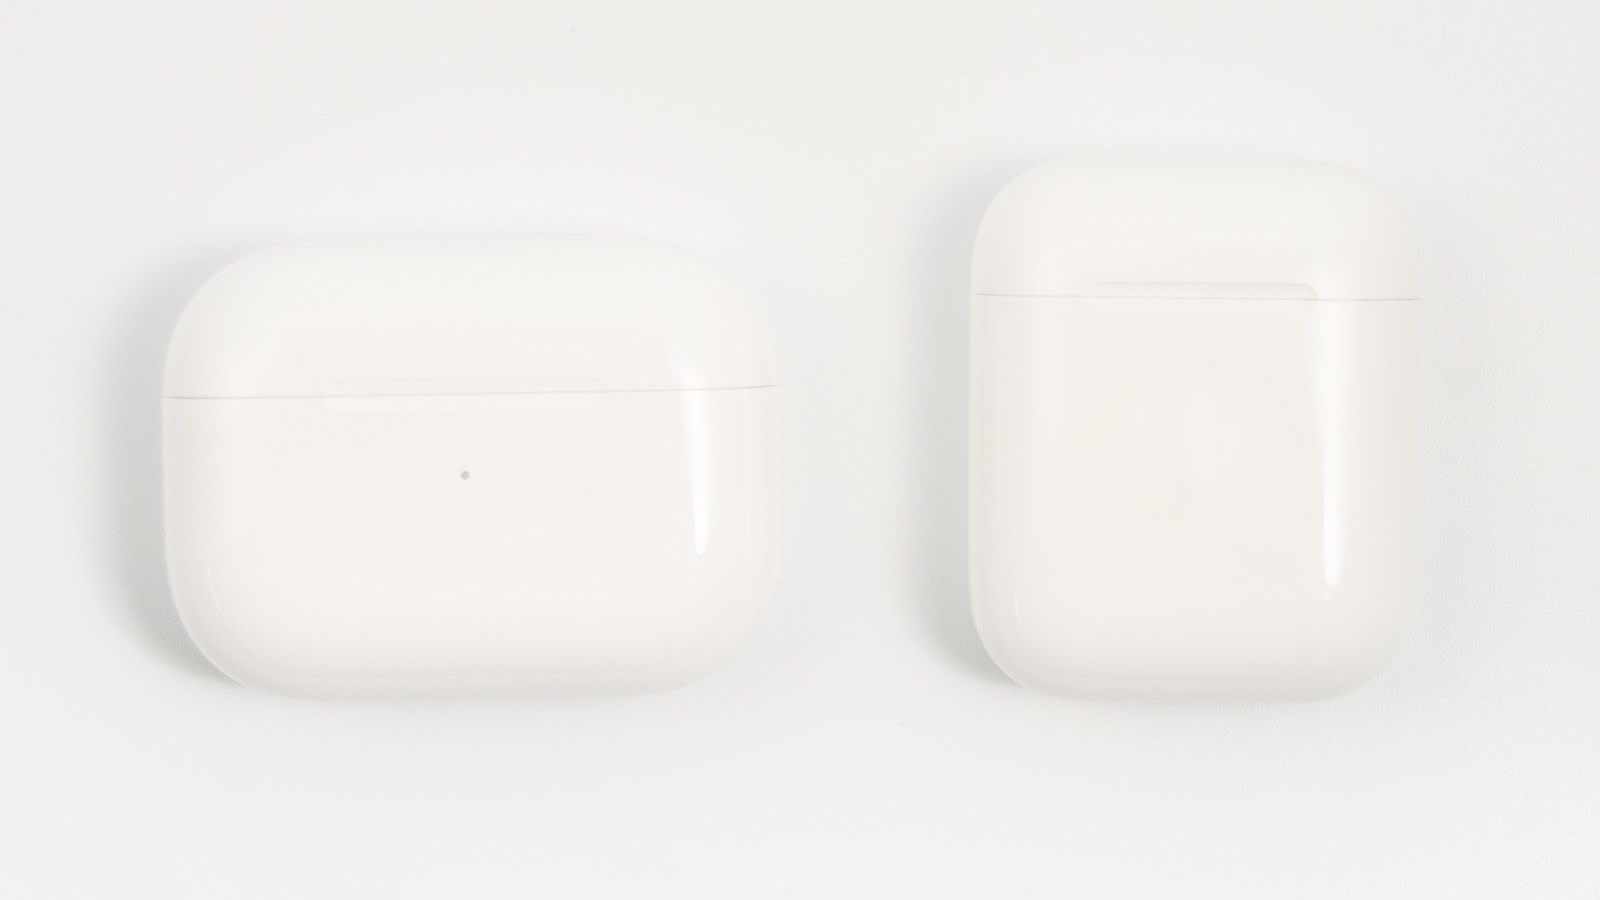 AirPods Pro case vs airpods 001